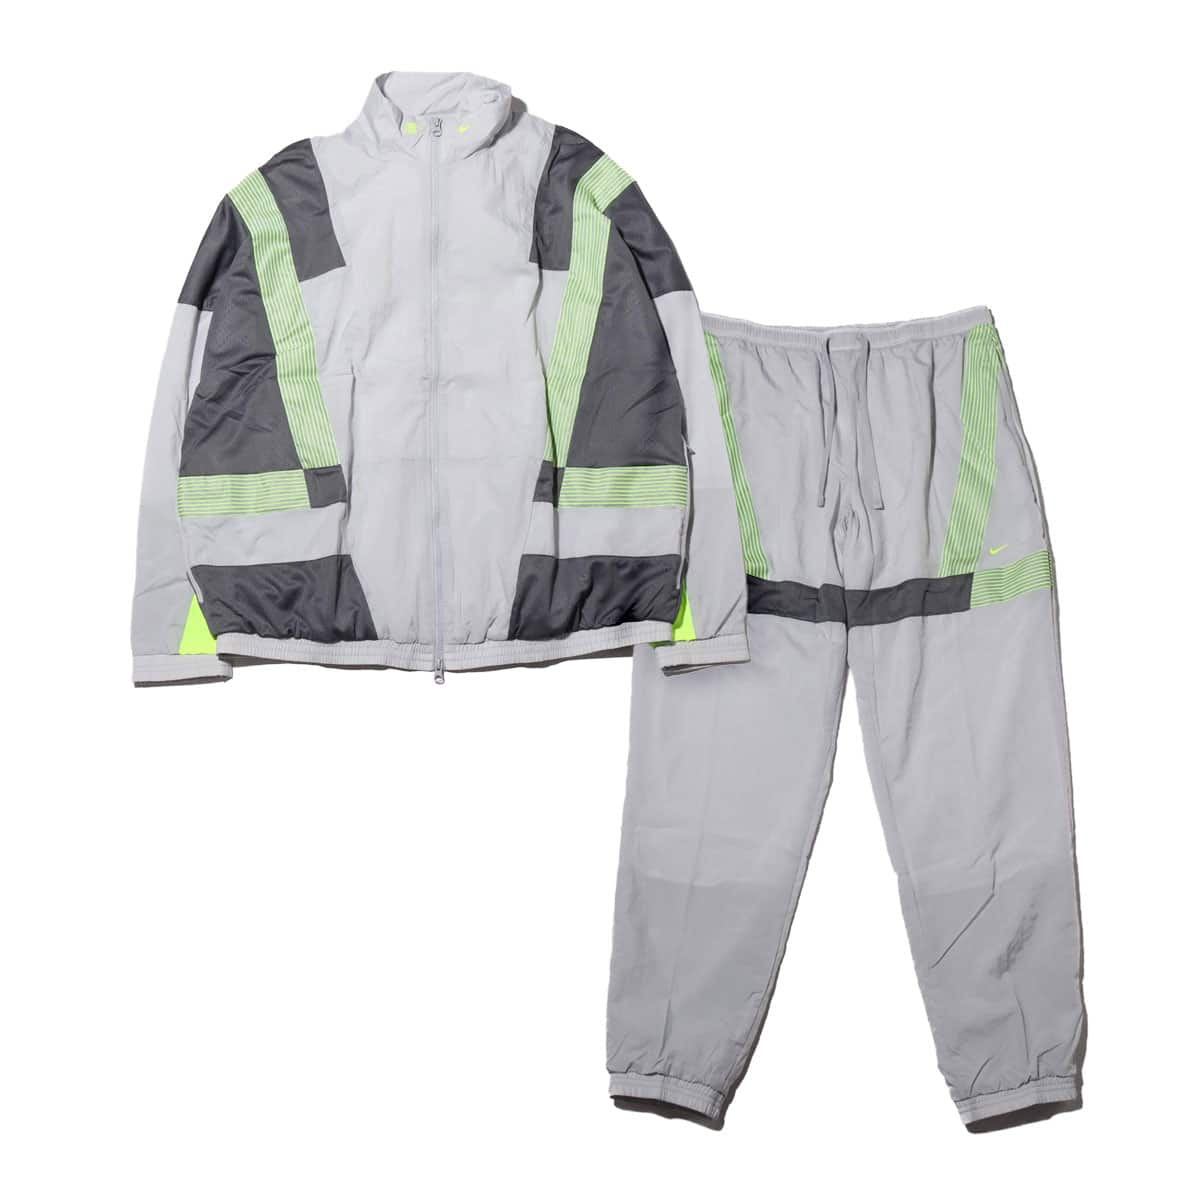 NIKE M NRG CHEN TRK SUIT PK WOLF GREY/DARK GREY/VOLT 19SU-S_photo_large